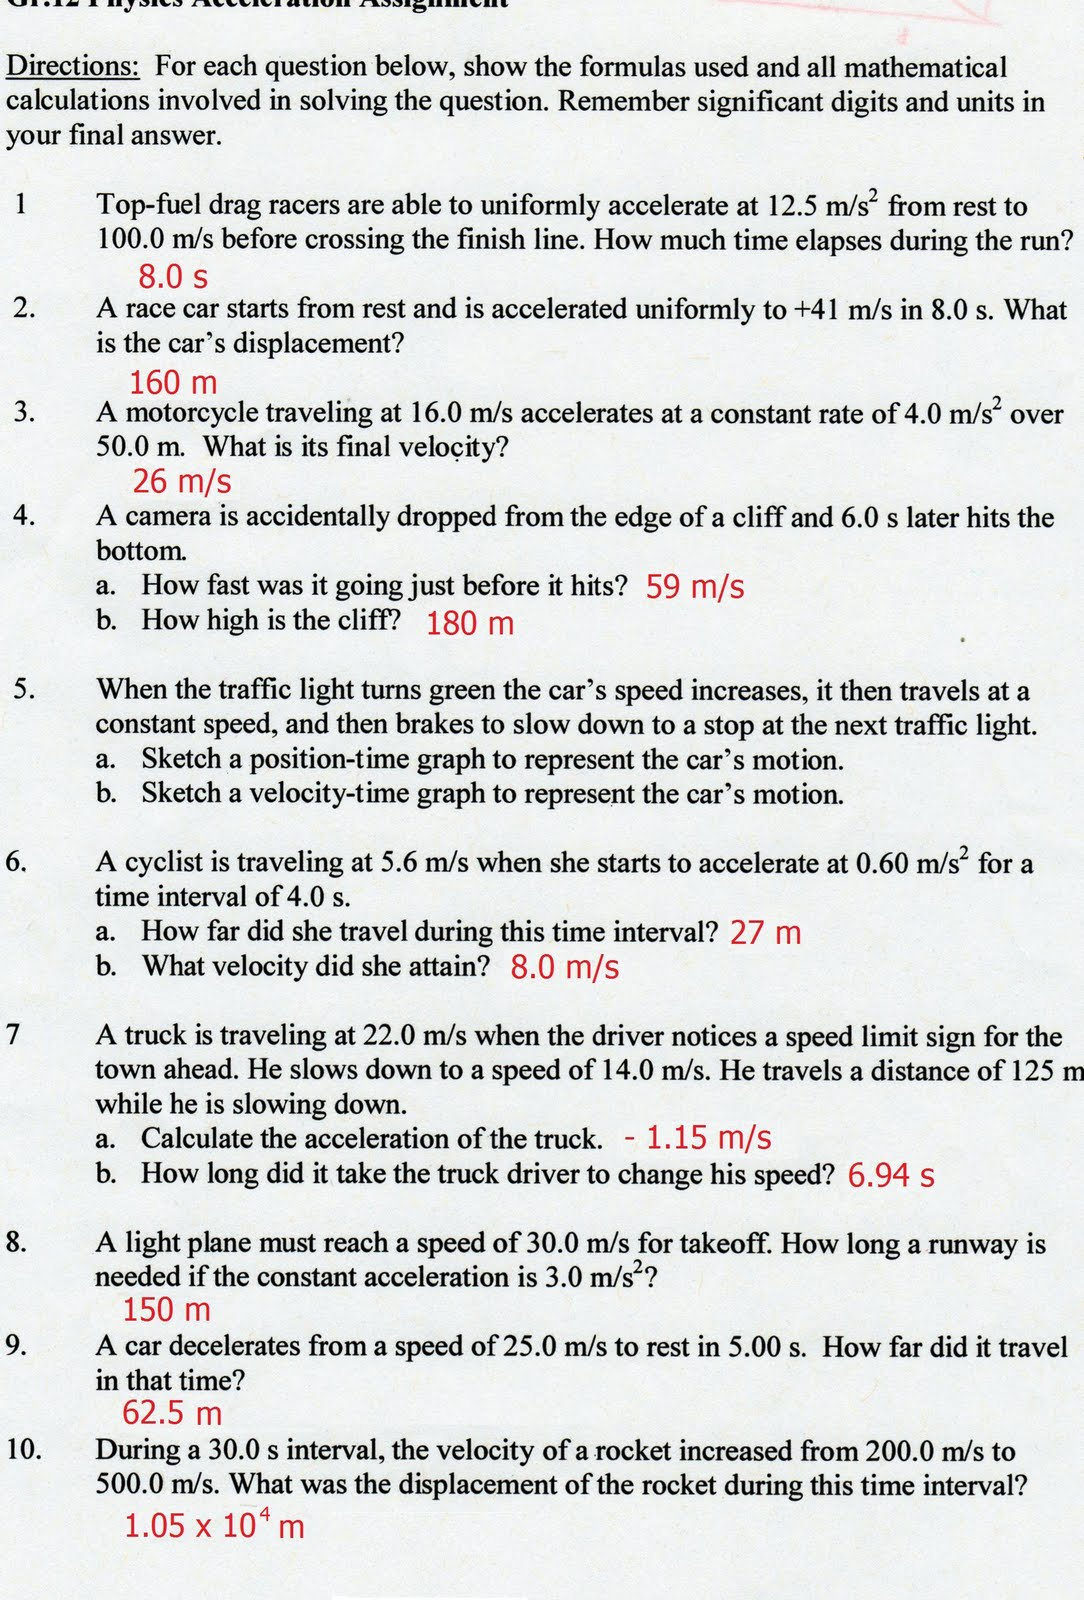 Worksheets Speed Velocity And Acceleration Problems Worksheet Answers physics12fall2010 so im just reposting the worksheet with answers for those who might not have seen on amys previous post followed by question 5